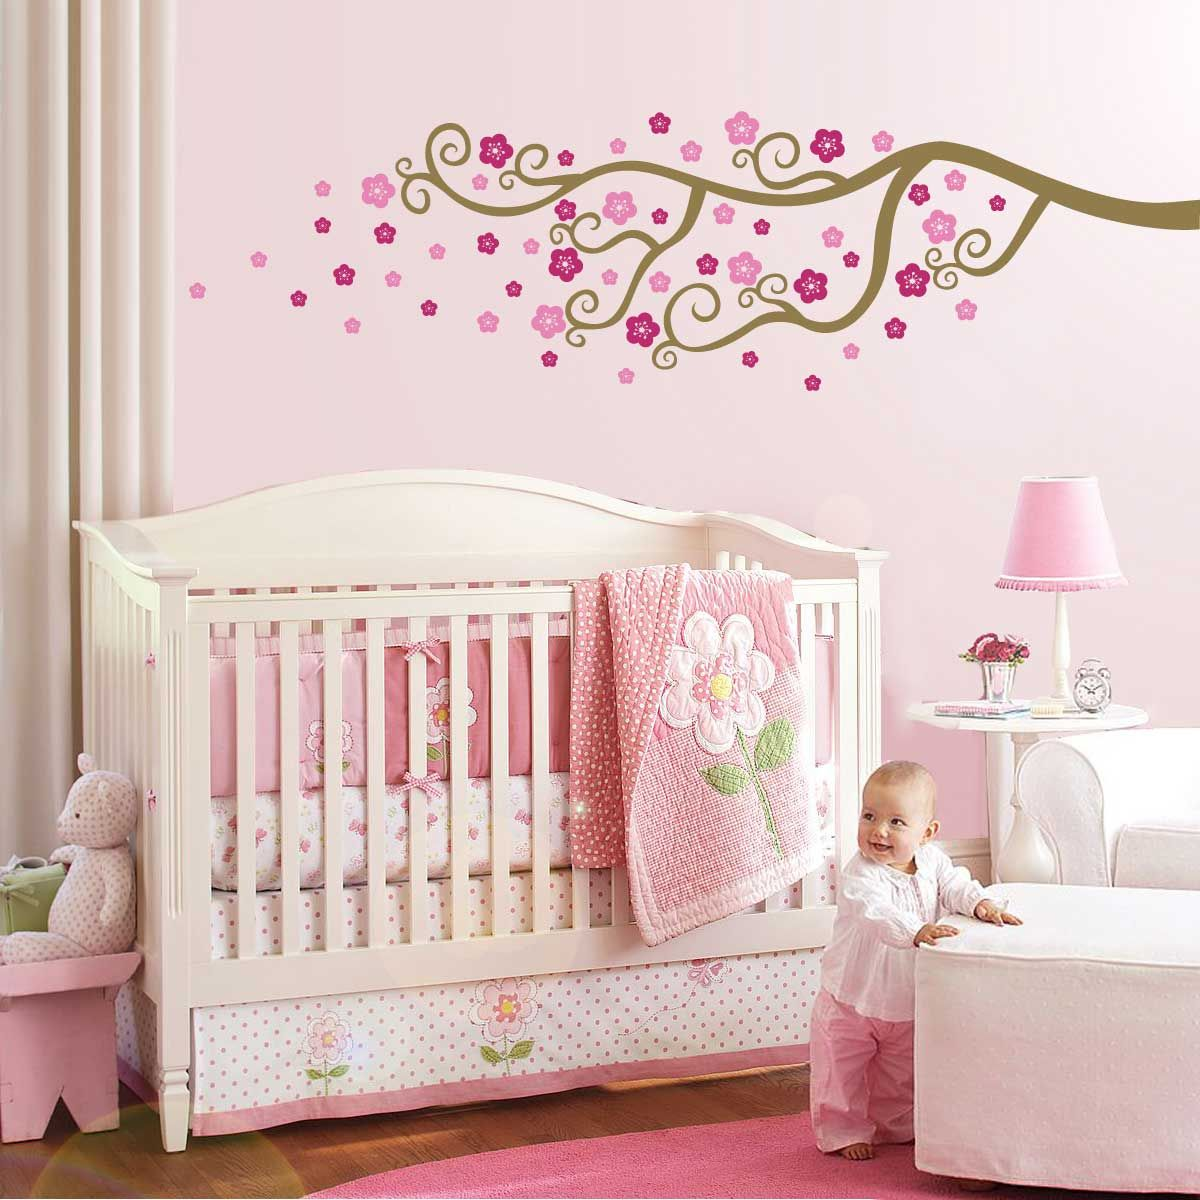 Inspiring Sophisticated Nursery Room Ideas Beautiful Light Pink - Light pink nursery decor